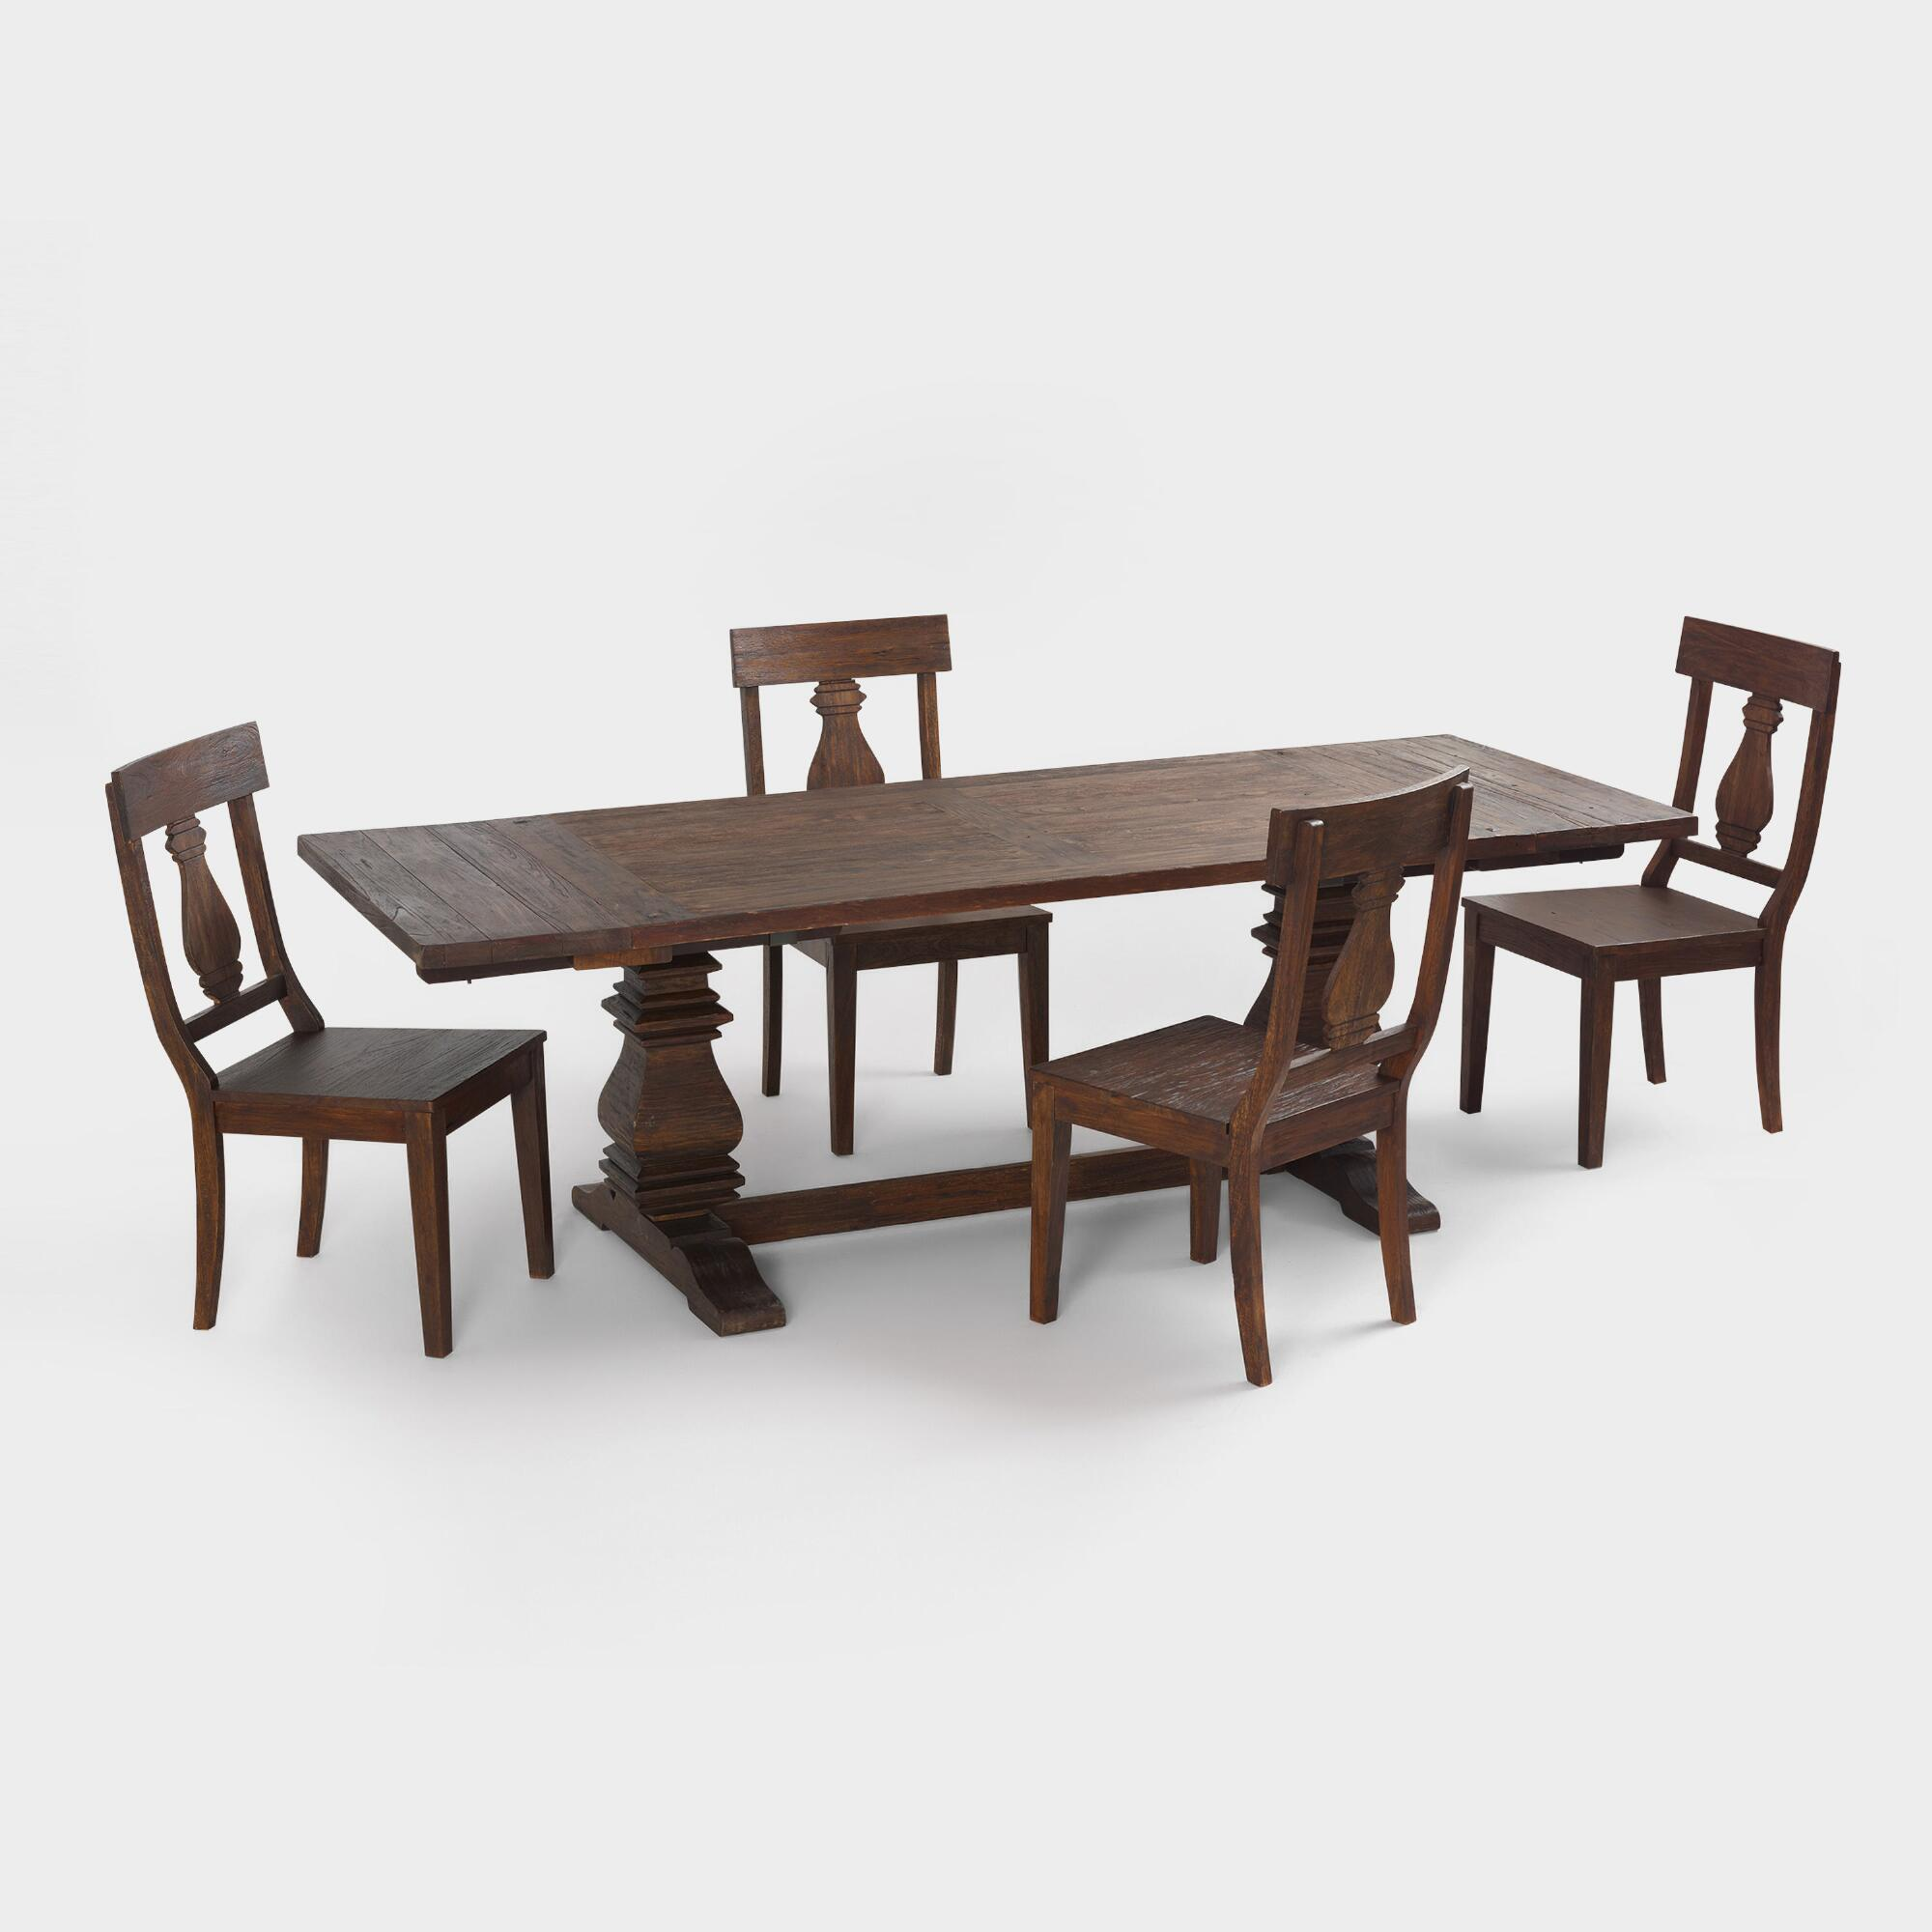 world market dining table Arcadia Dining Collection | World Market world market dining table